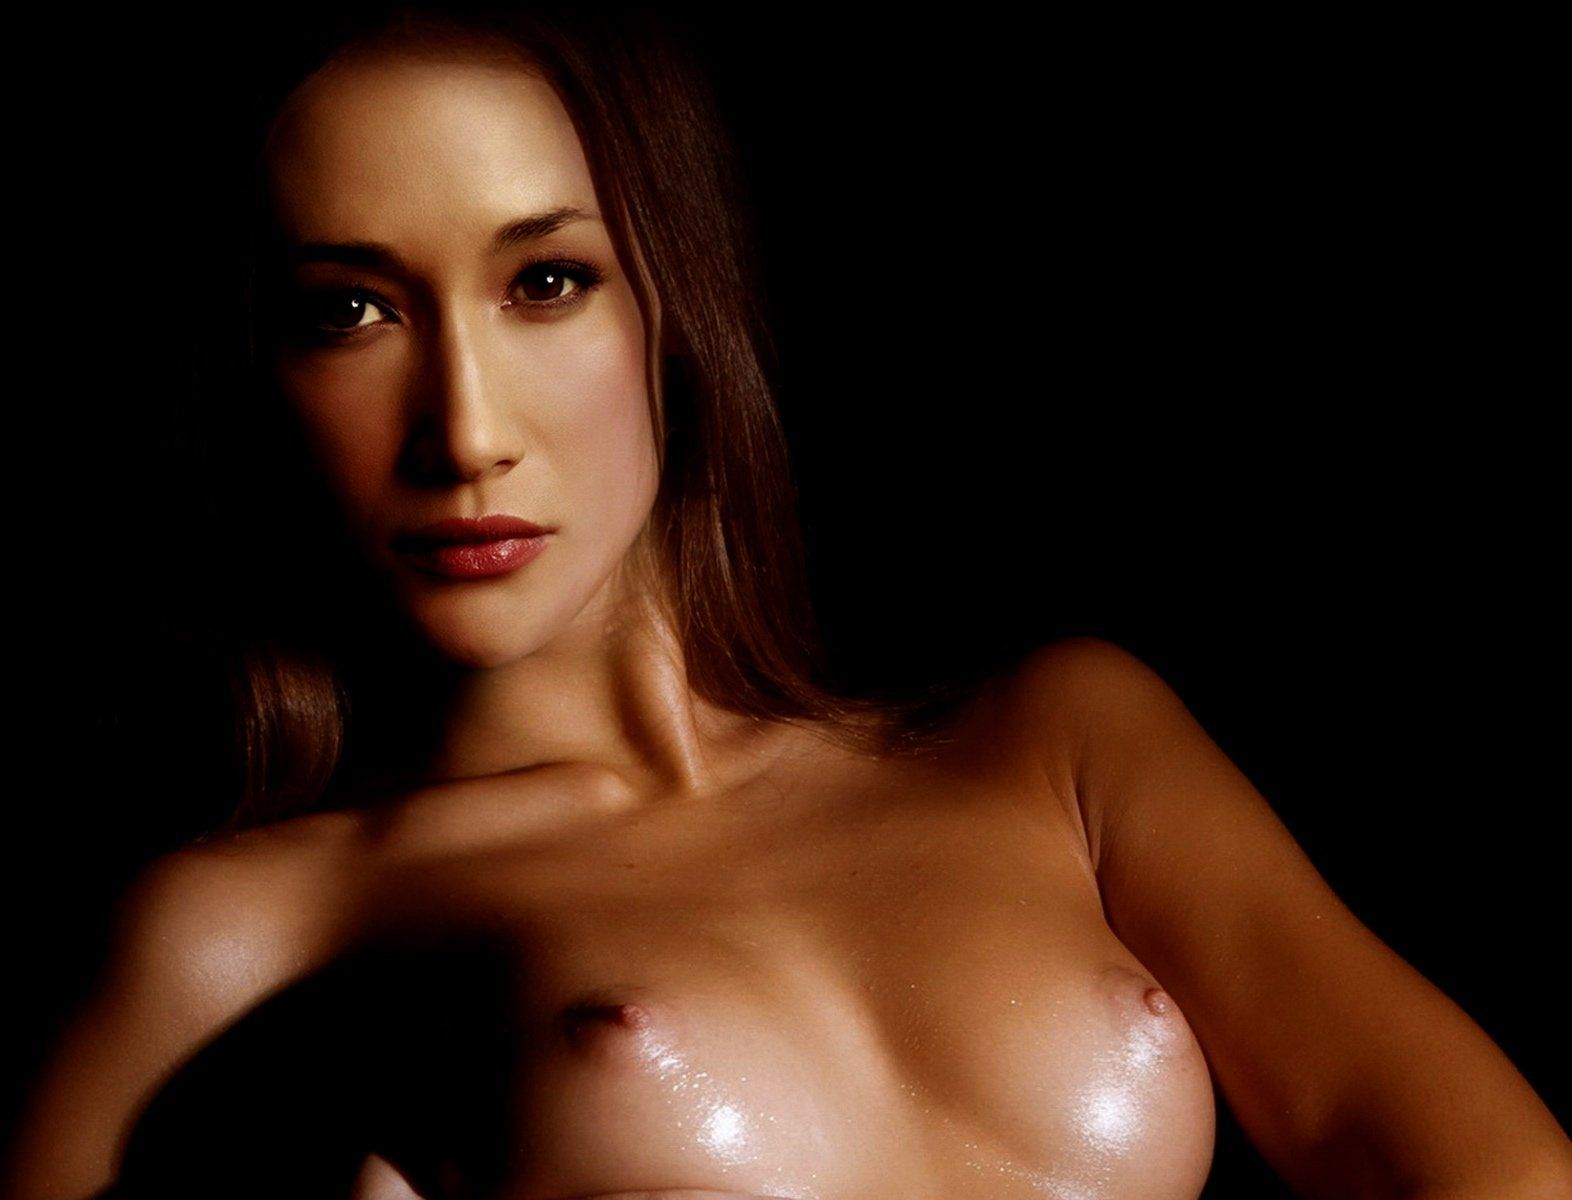 Fake nude photos of maggie q adult gallery excellent